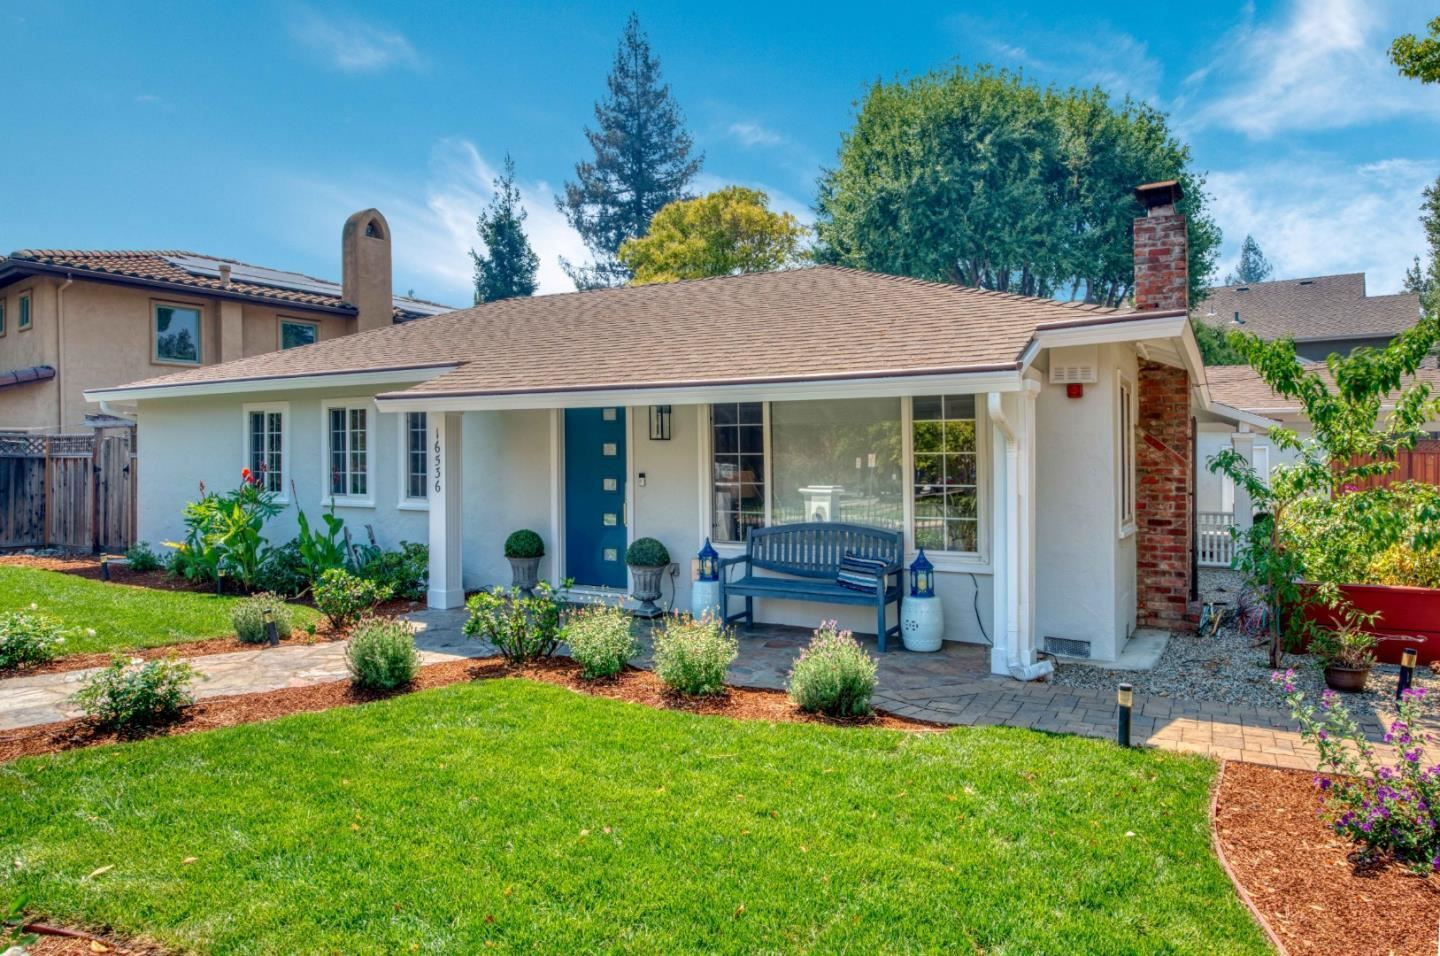 Photo for 16536 Shannon RD, LOS GATOS, CA 95032 (MLS # ML81810285)